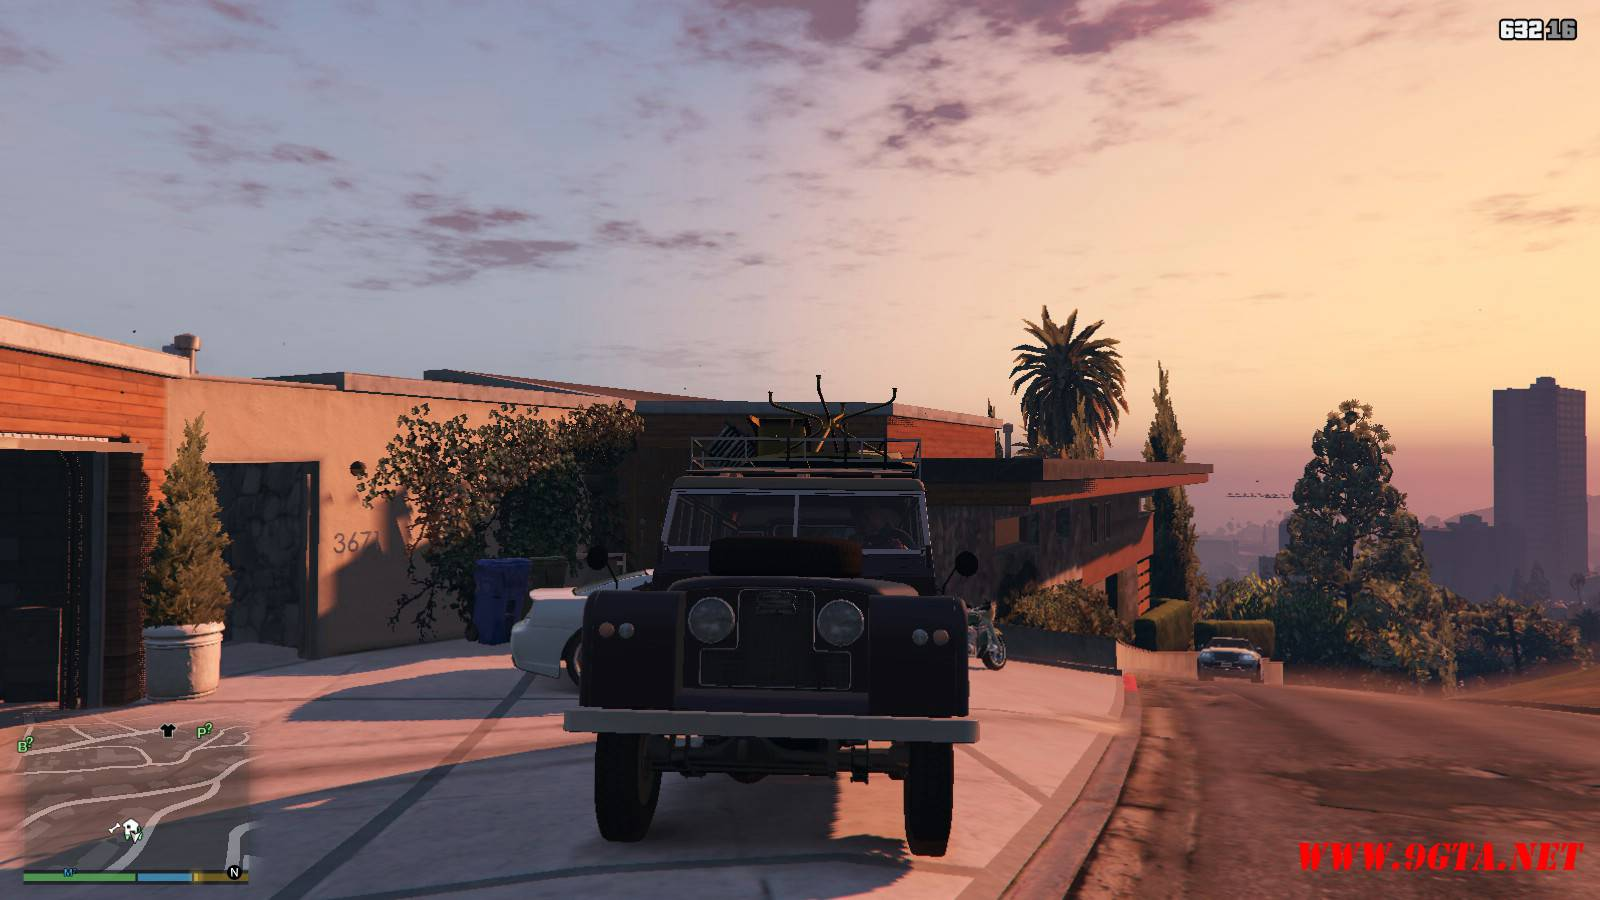 1971 Land Rover Series II Model 109A GTA5 Mods (5)